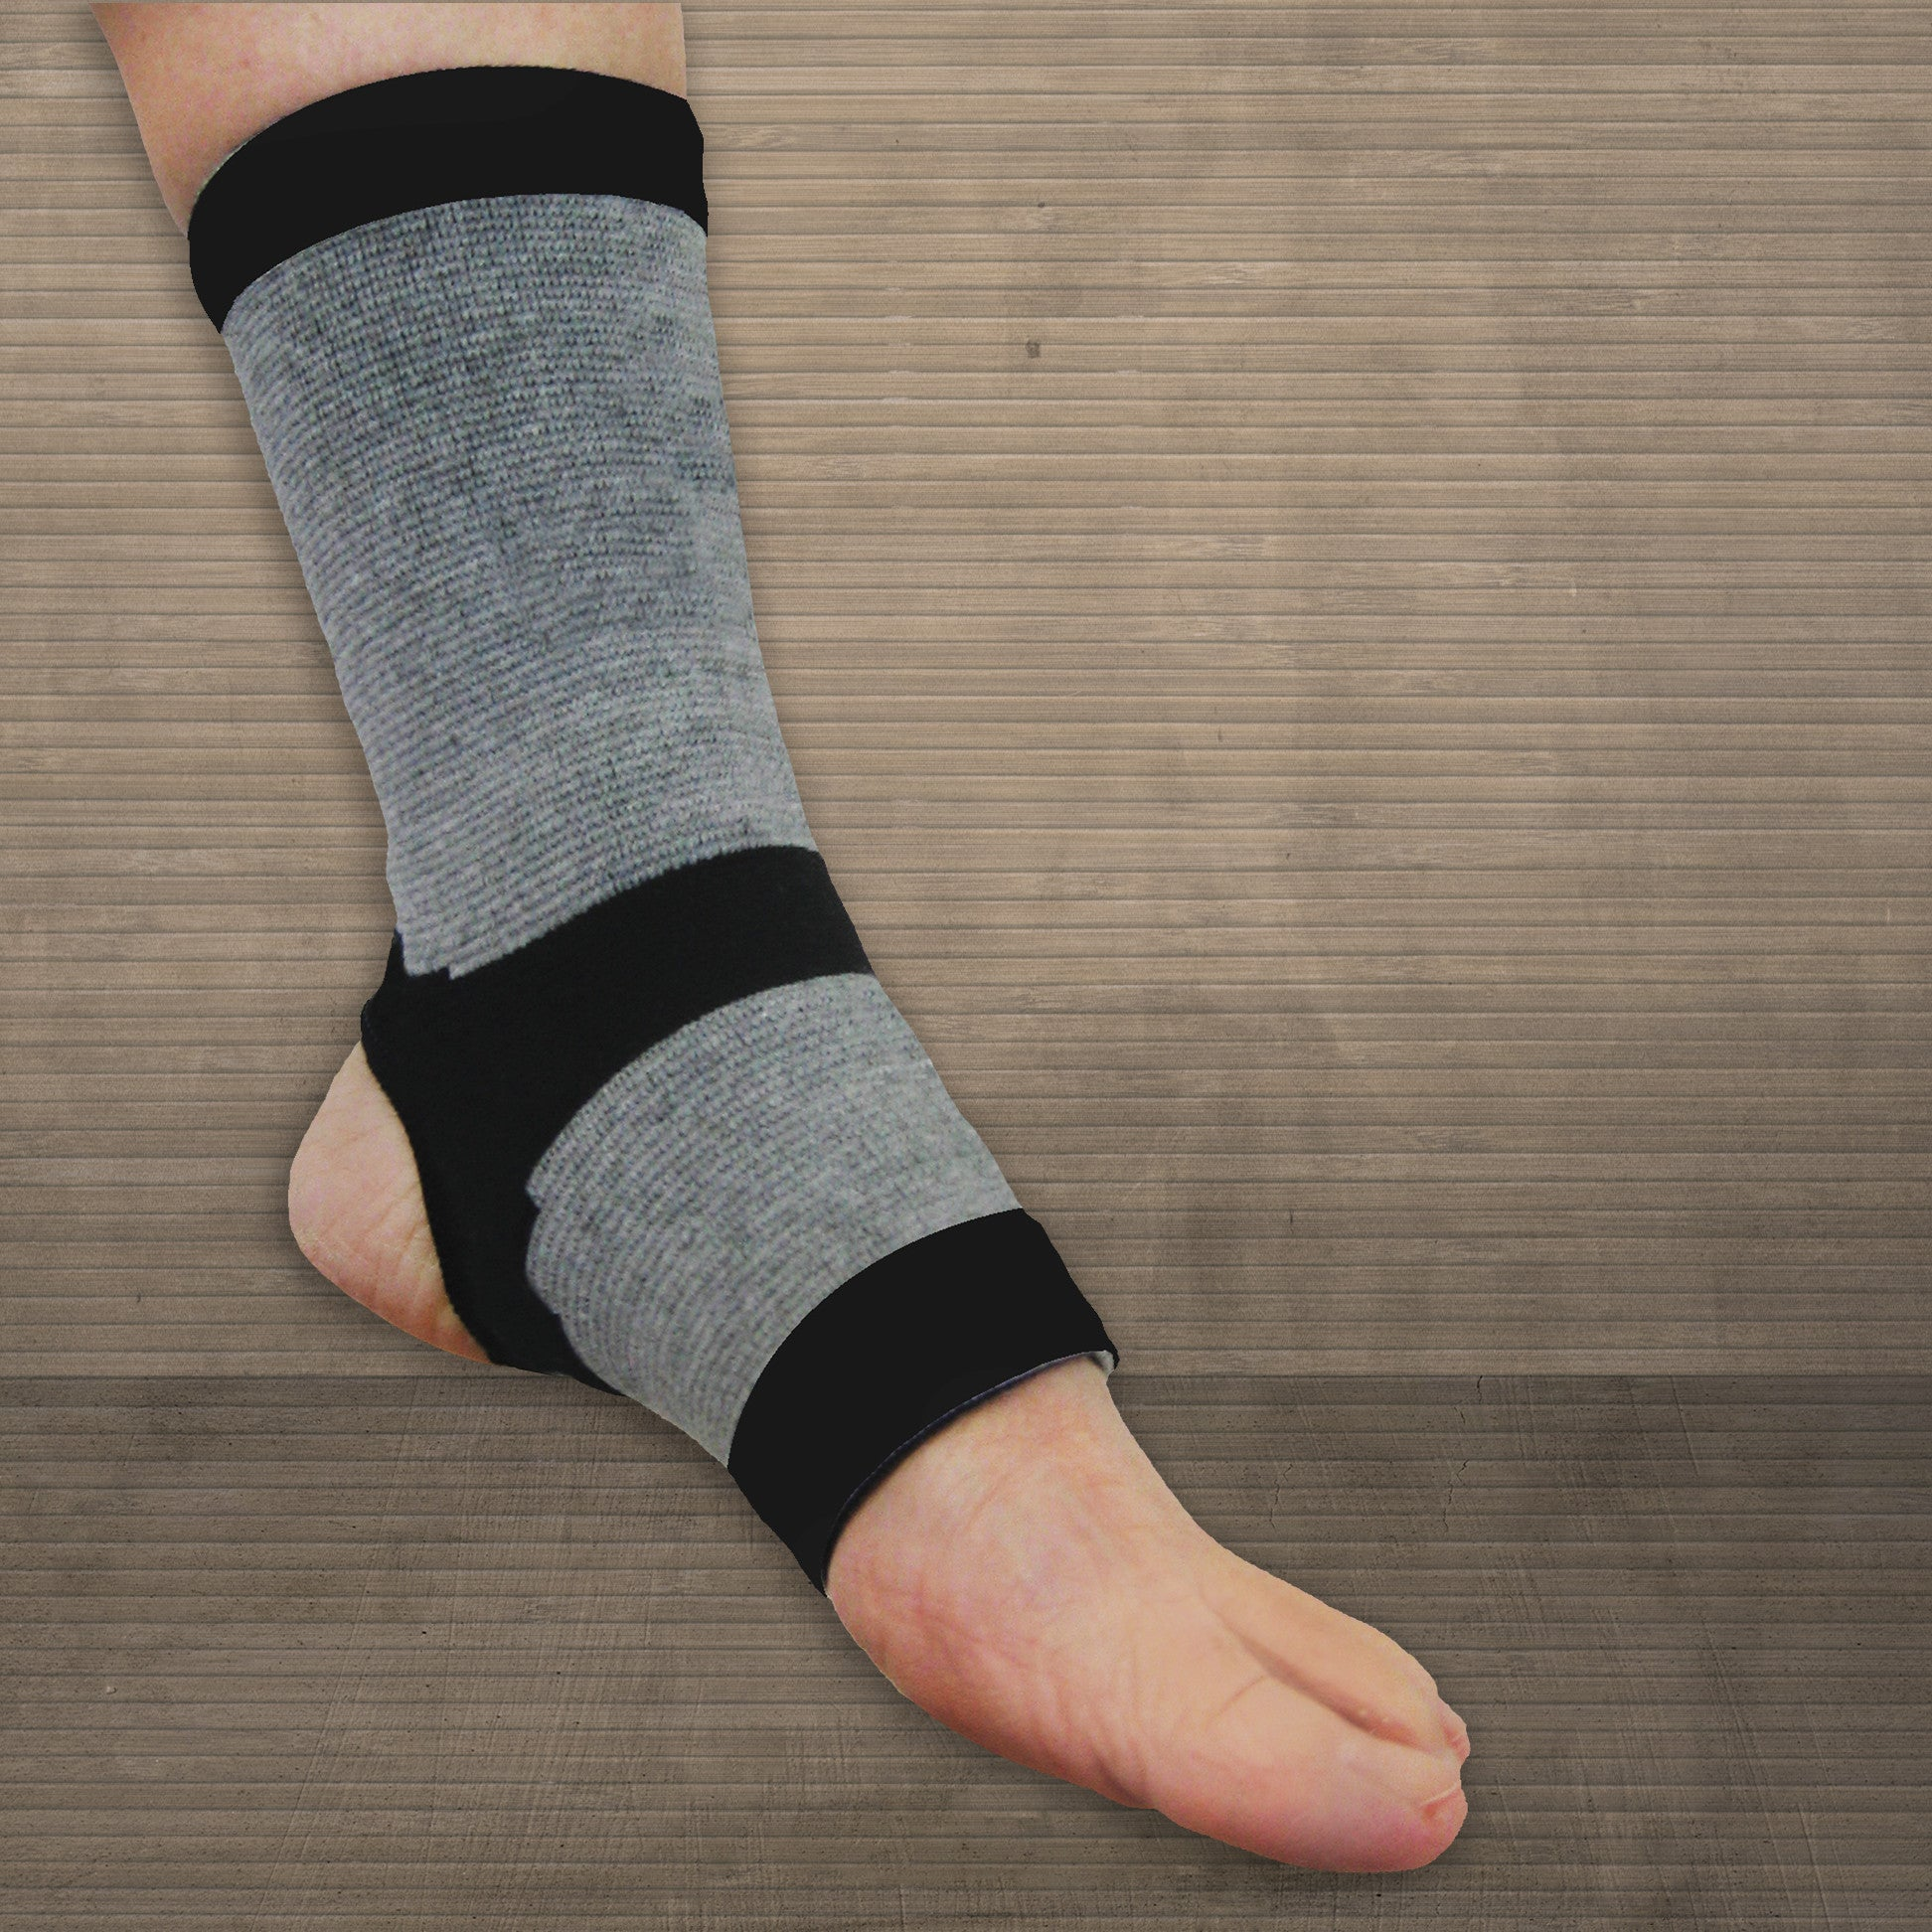 e05e839770 Bamboo Pro™ Self Warming Ankle Support - The Healing Tree